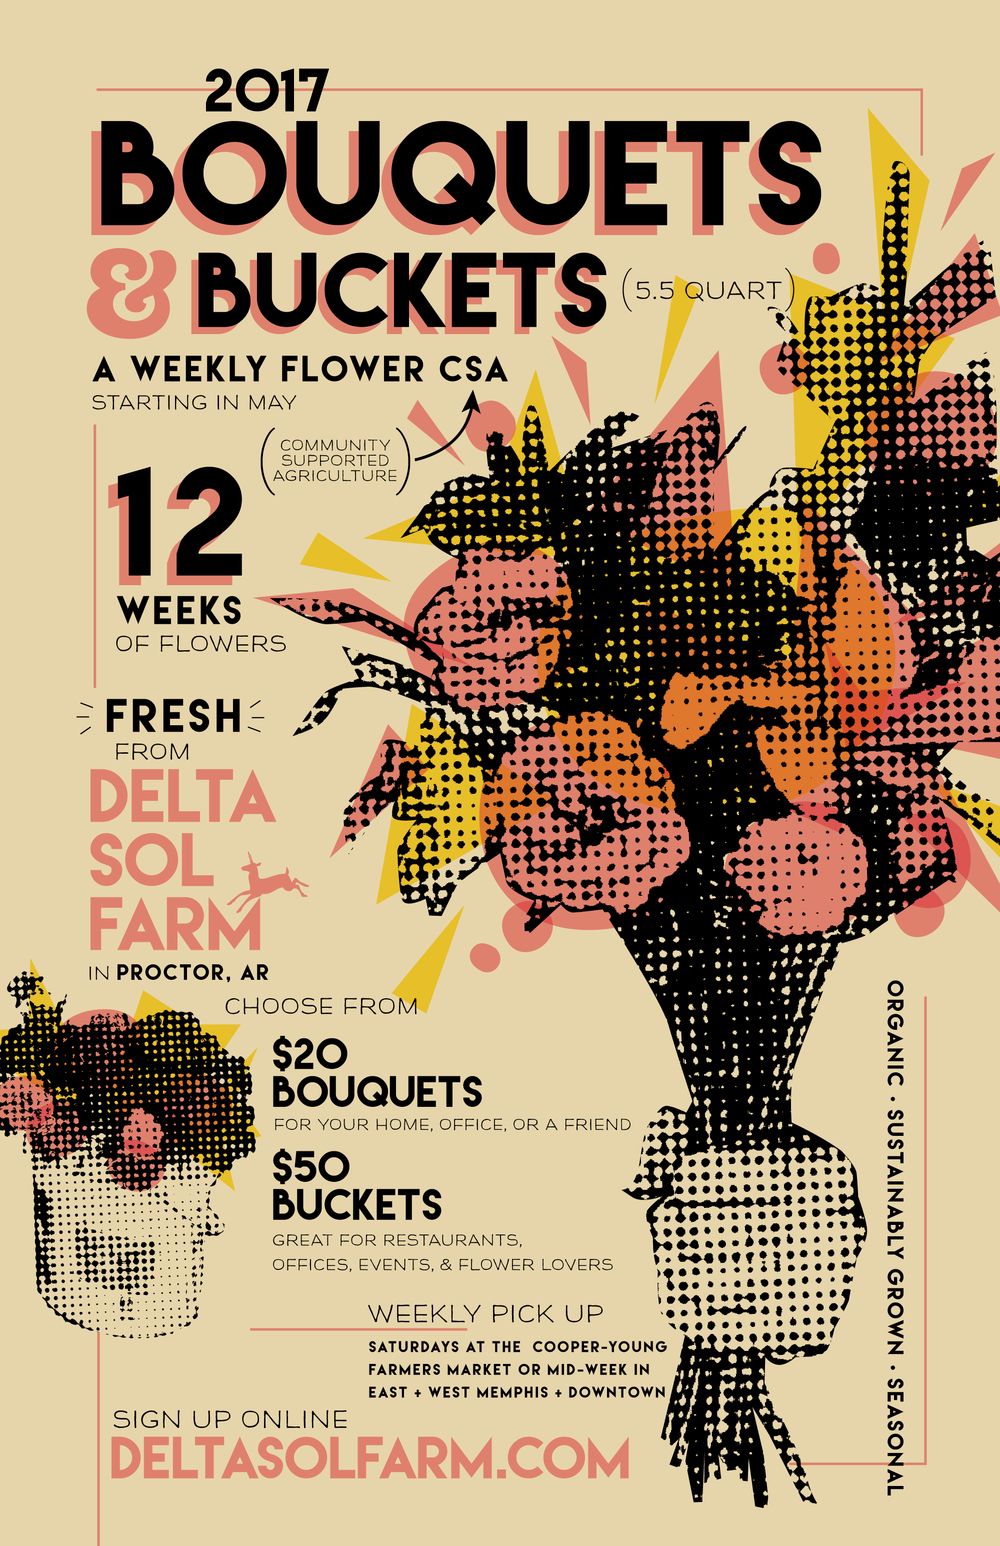 Bouquets & Buckets